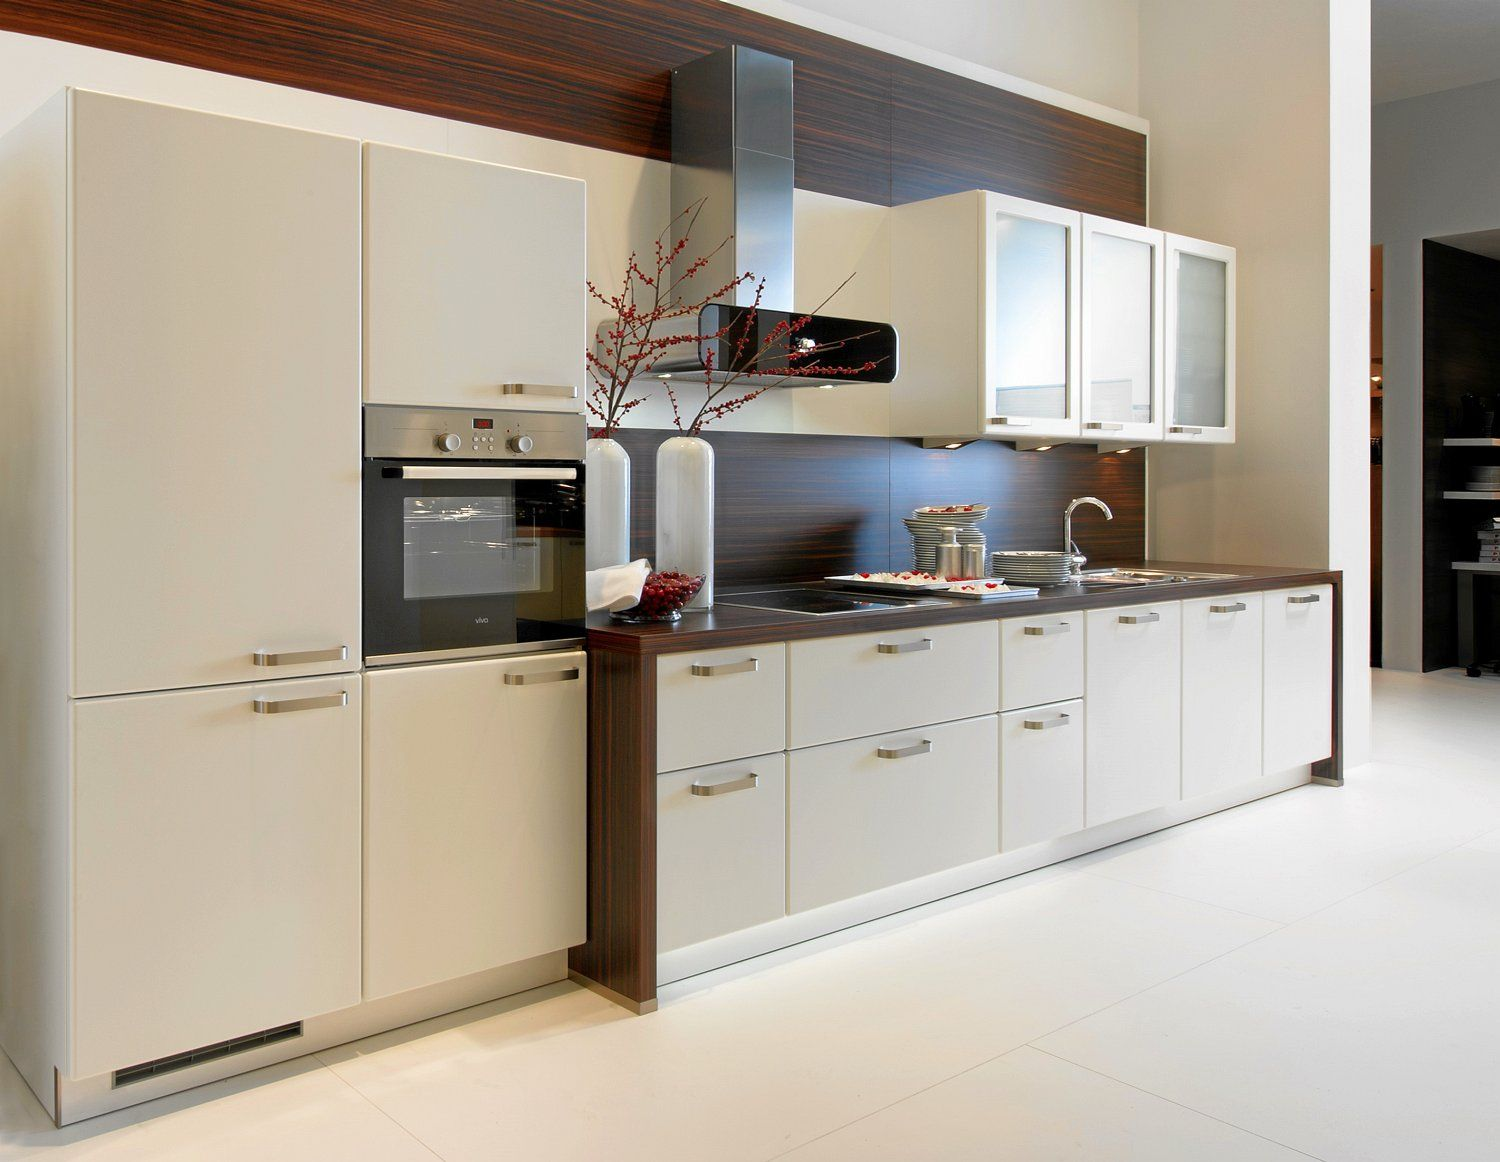 The Ideal Kitchen Solution From Nolte German Kitchens. Minimalist Design  Provides The Best Solution For Modern Living.